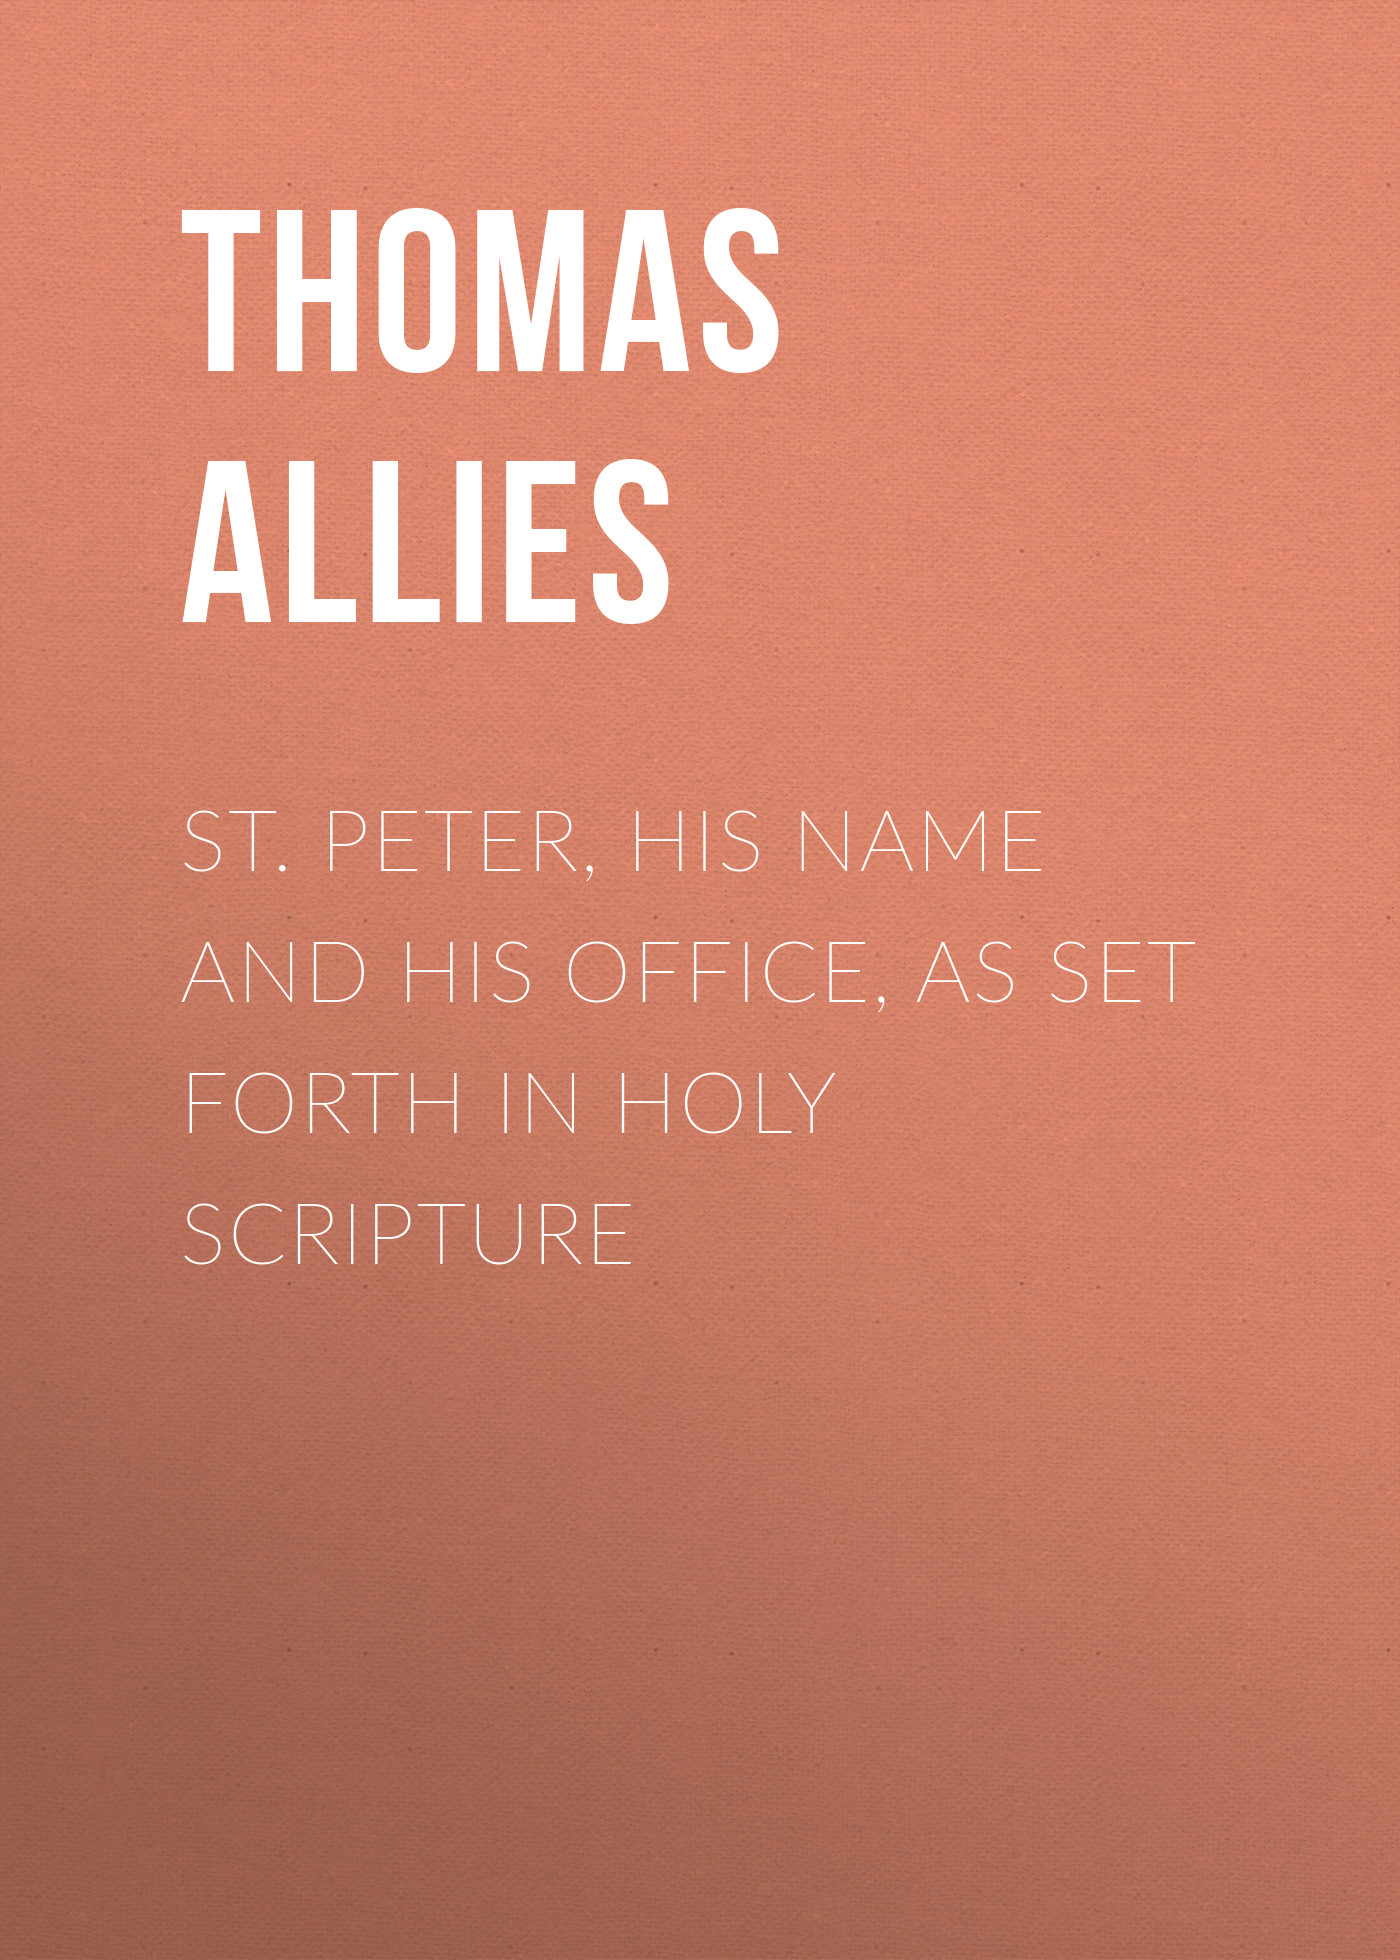 цена на Allies Thomas William St. Peter, His Name and His Office, as Set Forth in Holy Scripture